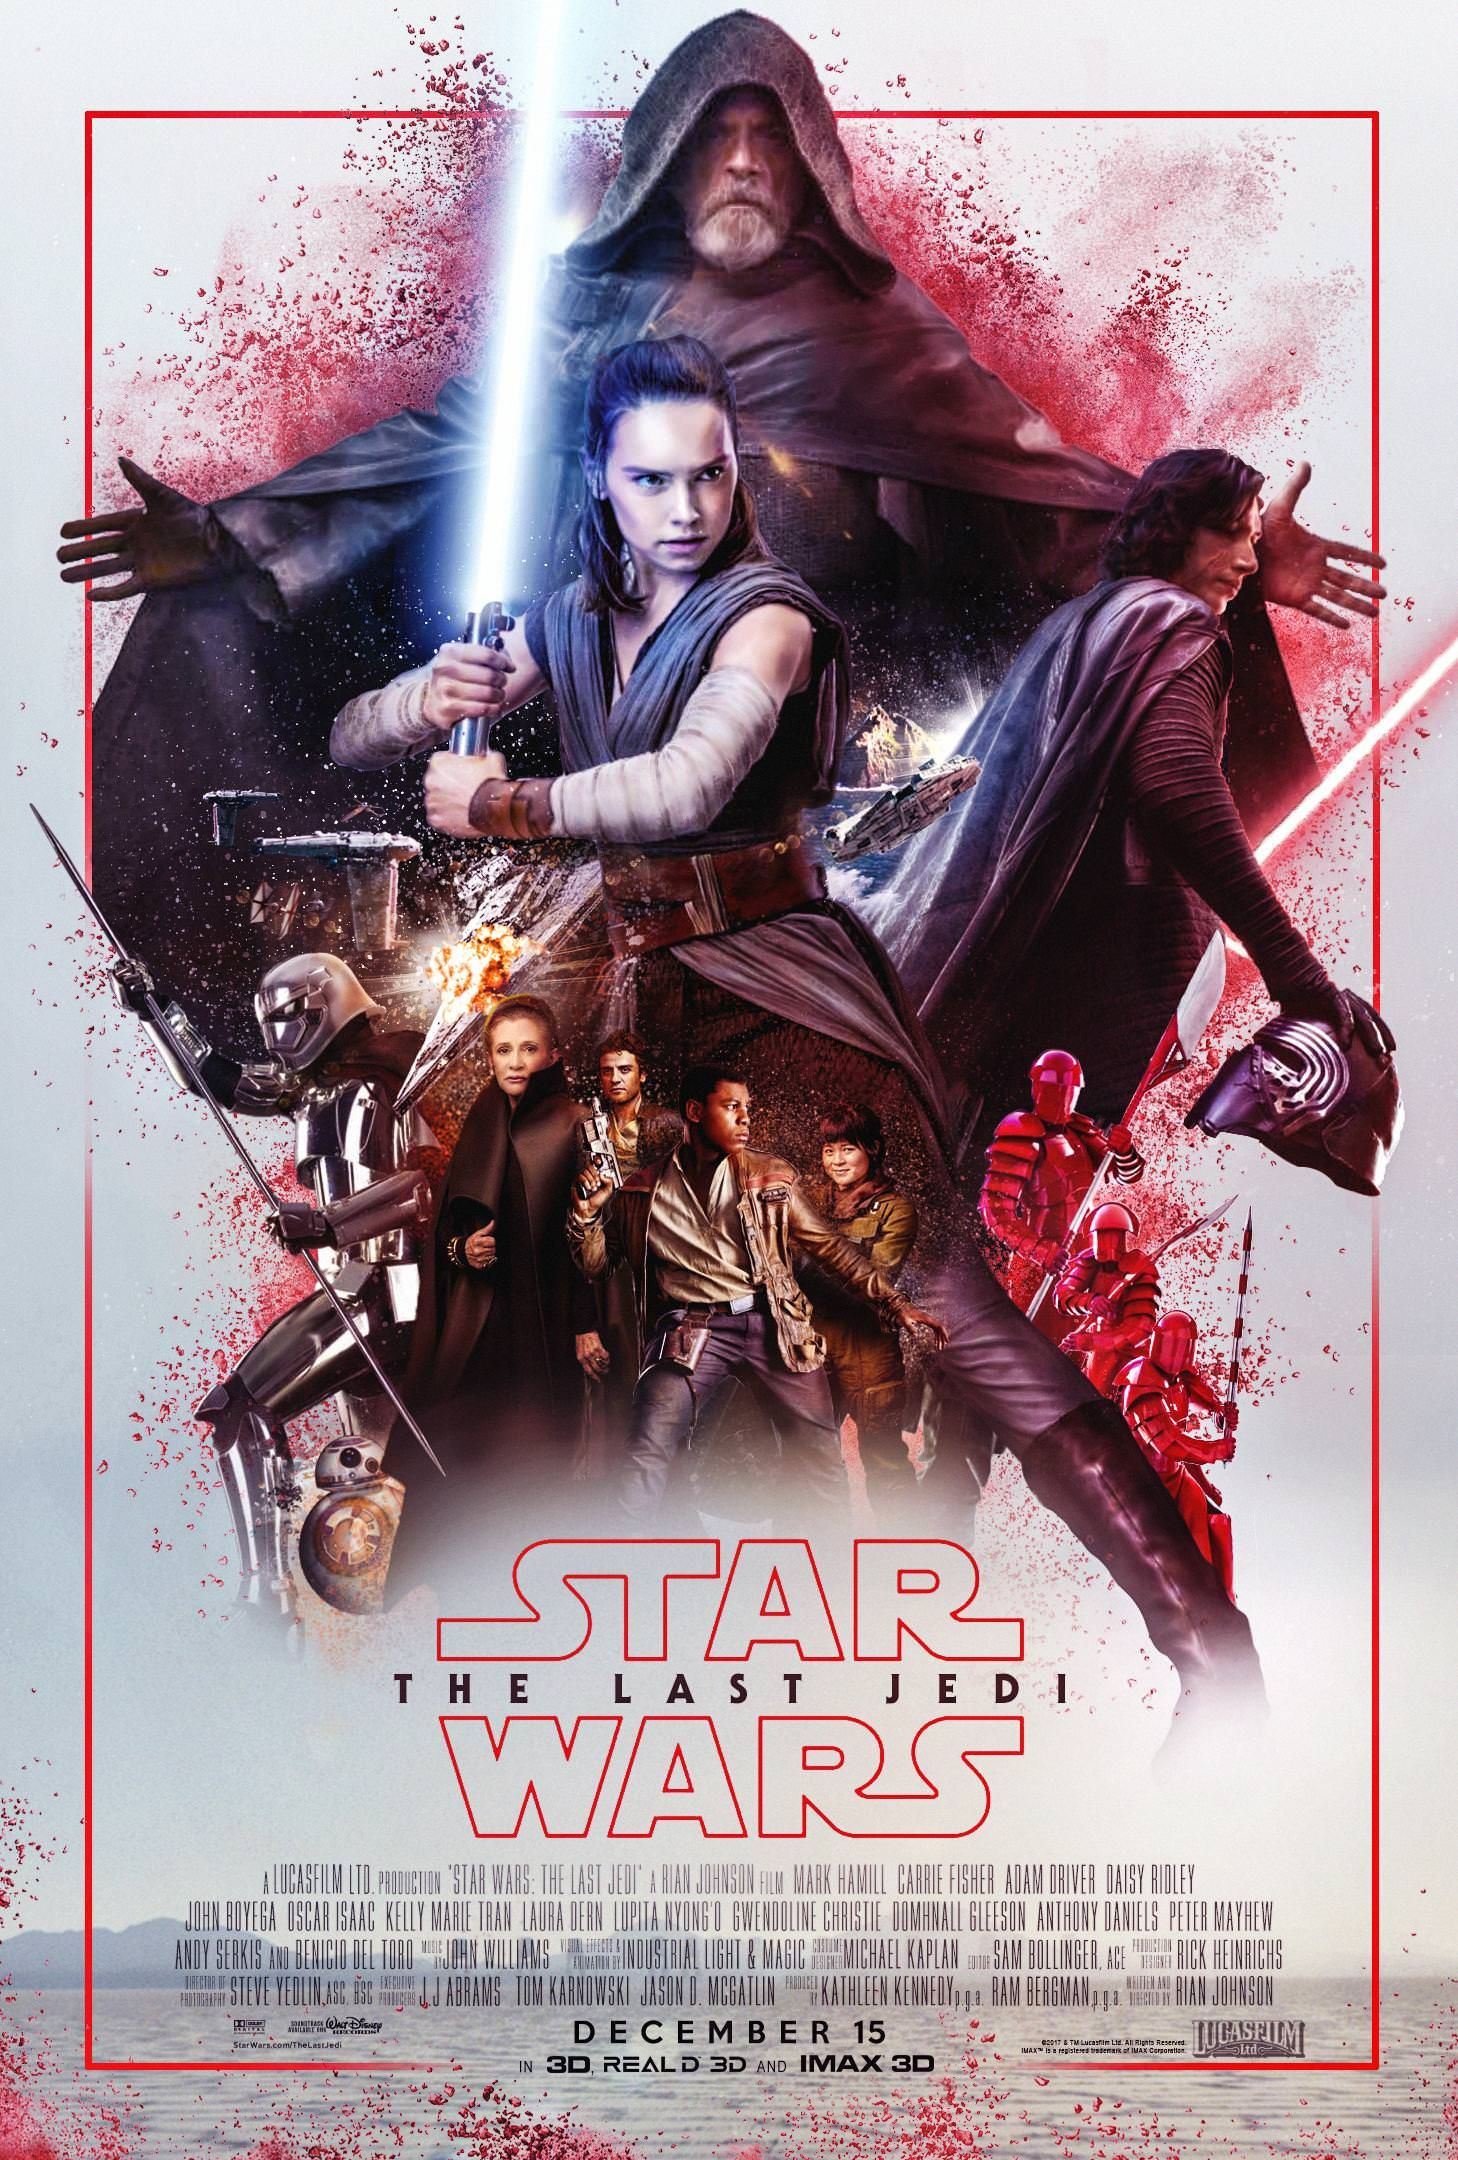 I Made A Poster For The Last Jedi Star Wars Watch Star Wars Episodes Star Wars Wallpaper